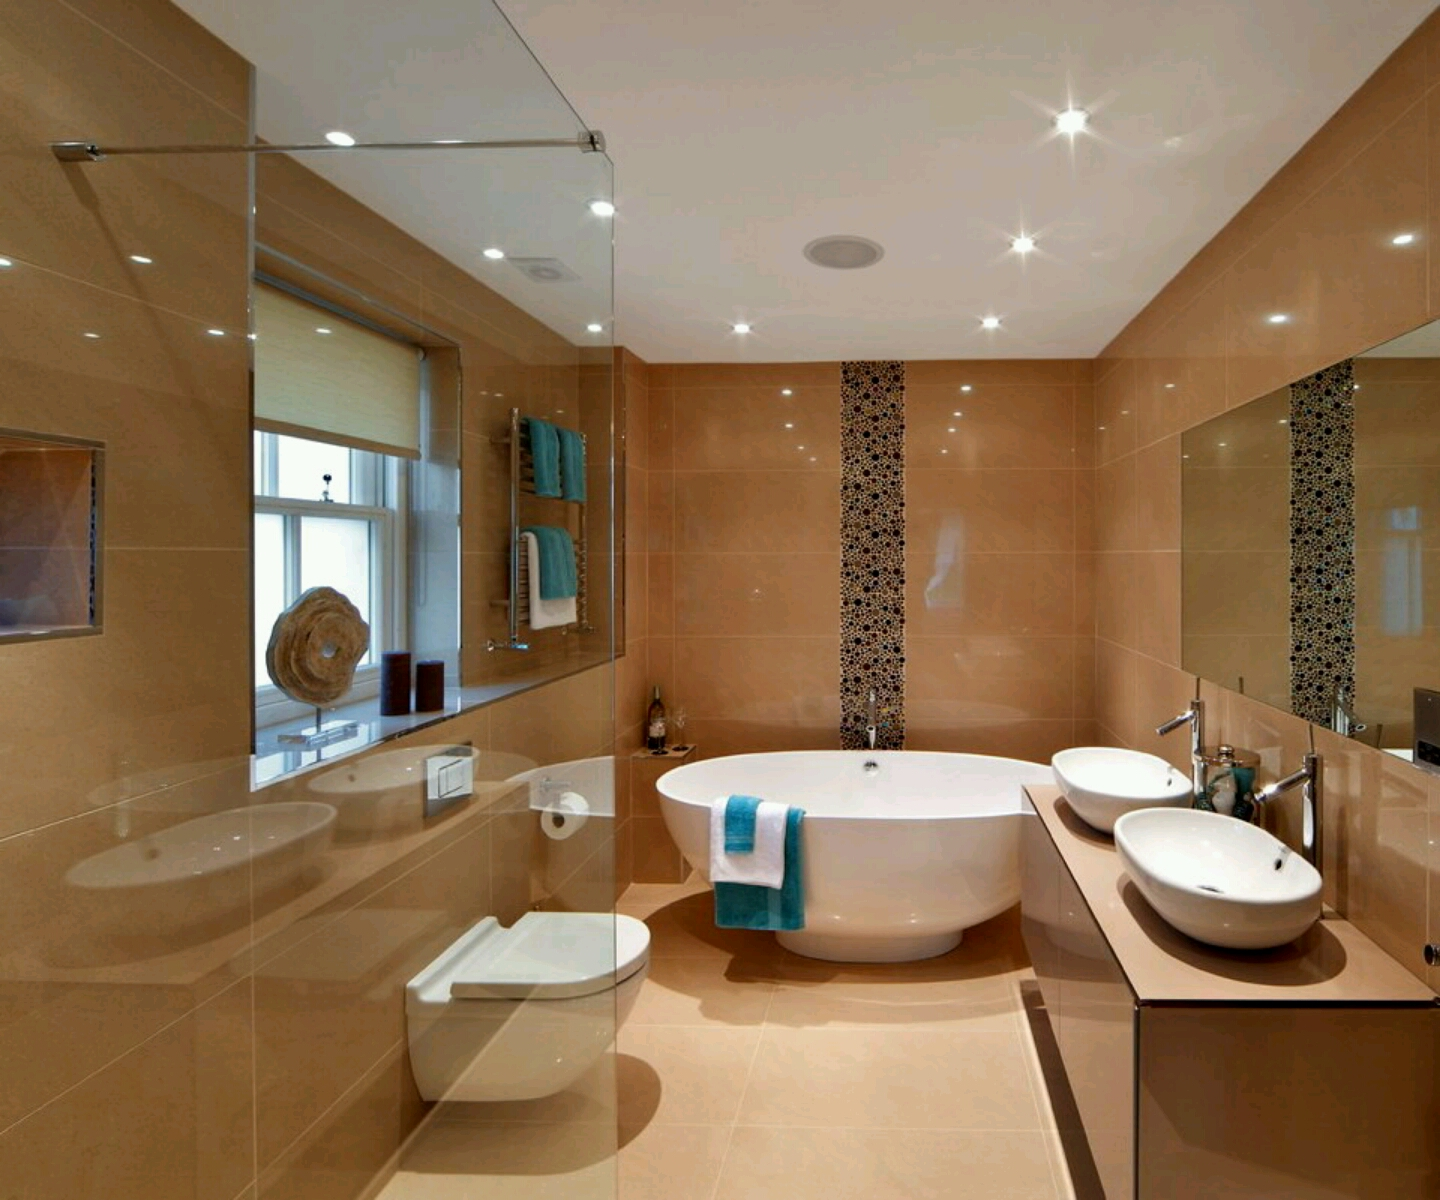 Luxury modern bathrooms designs decoration ideas new for Bathroom design luxury